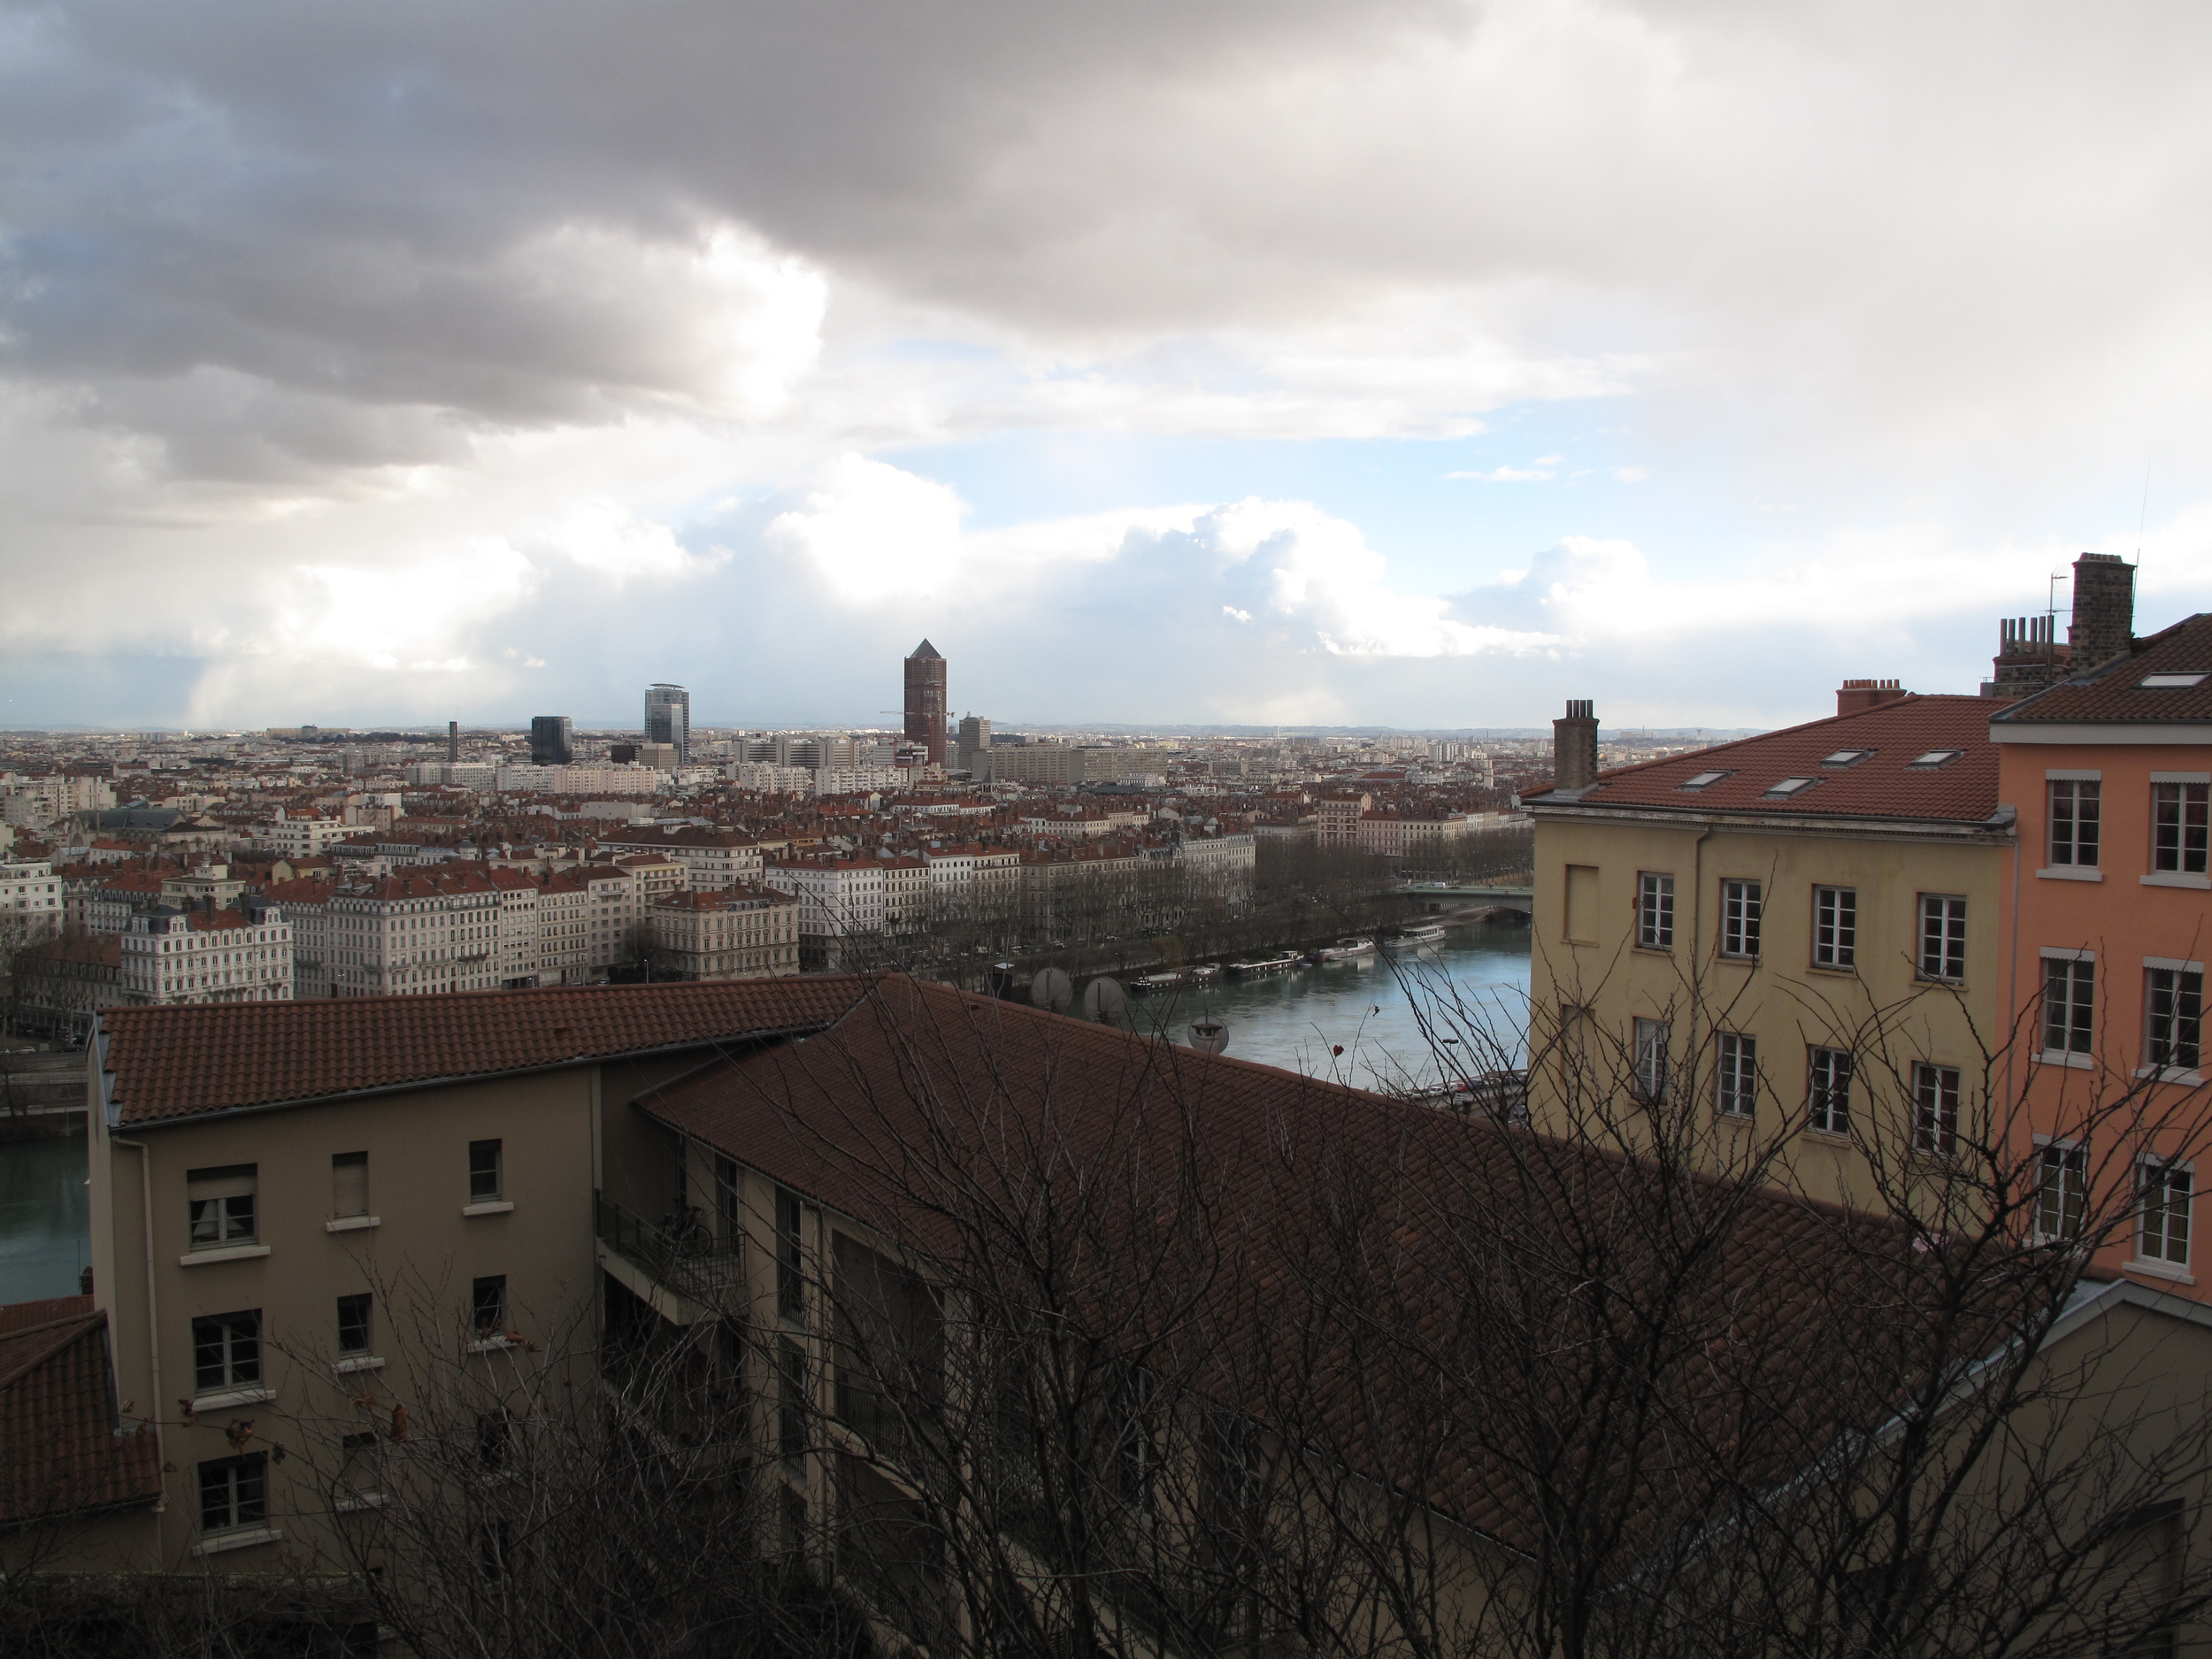 The view of Lyon from the Croix Rousse